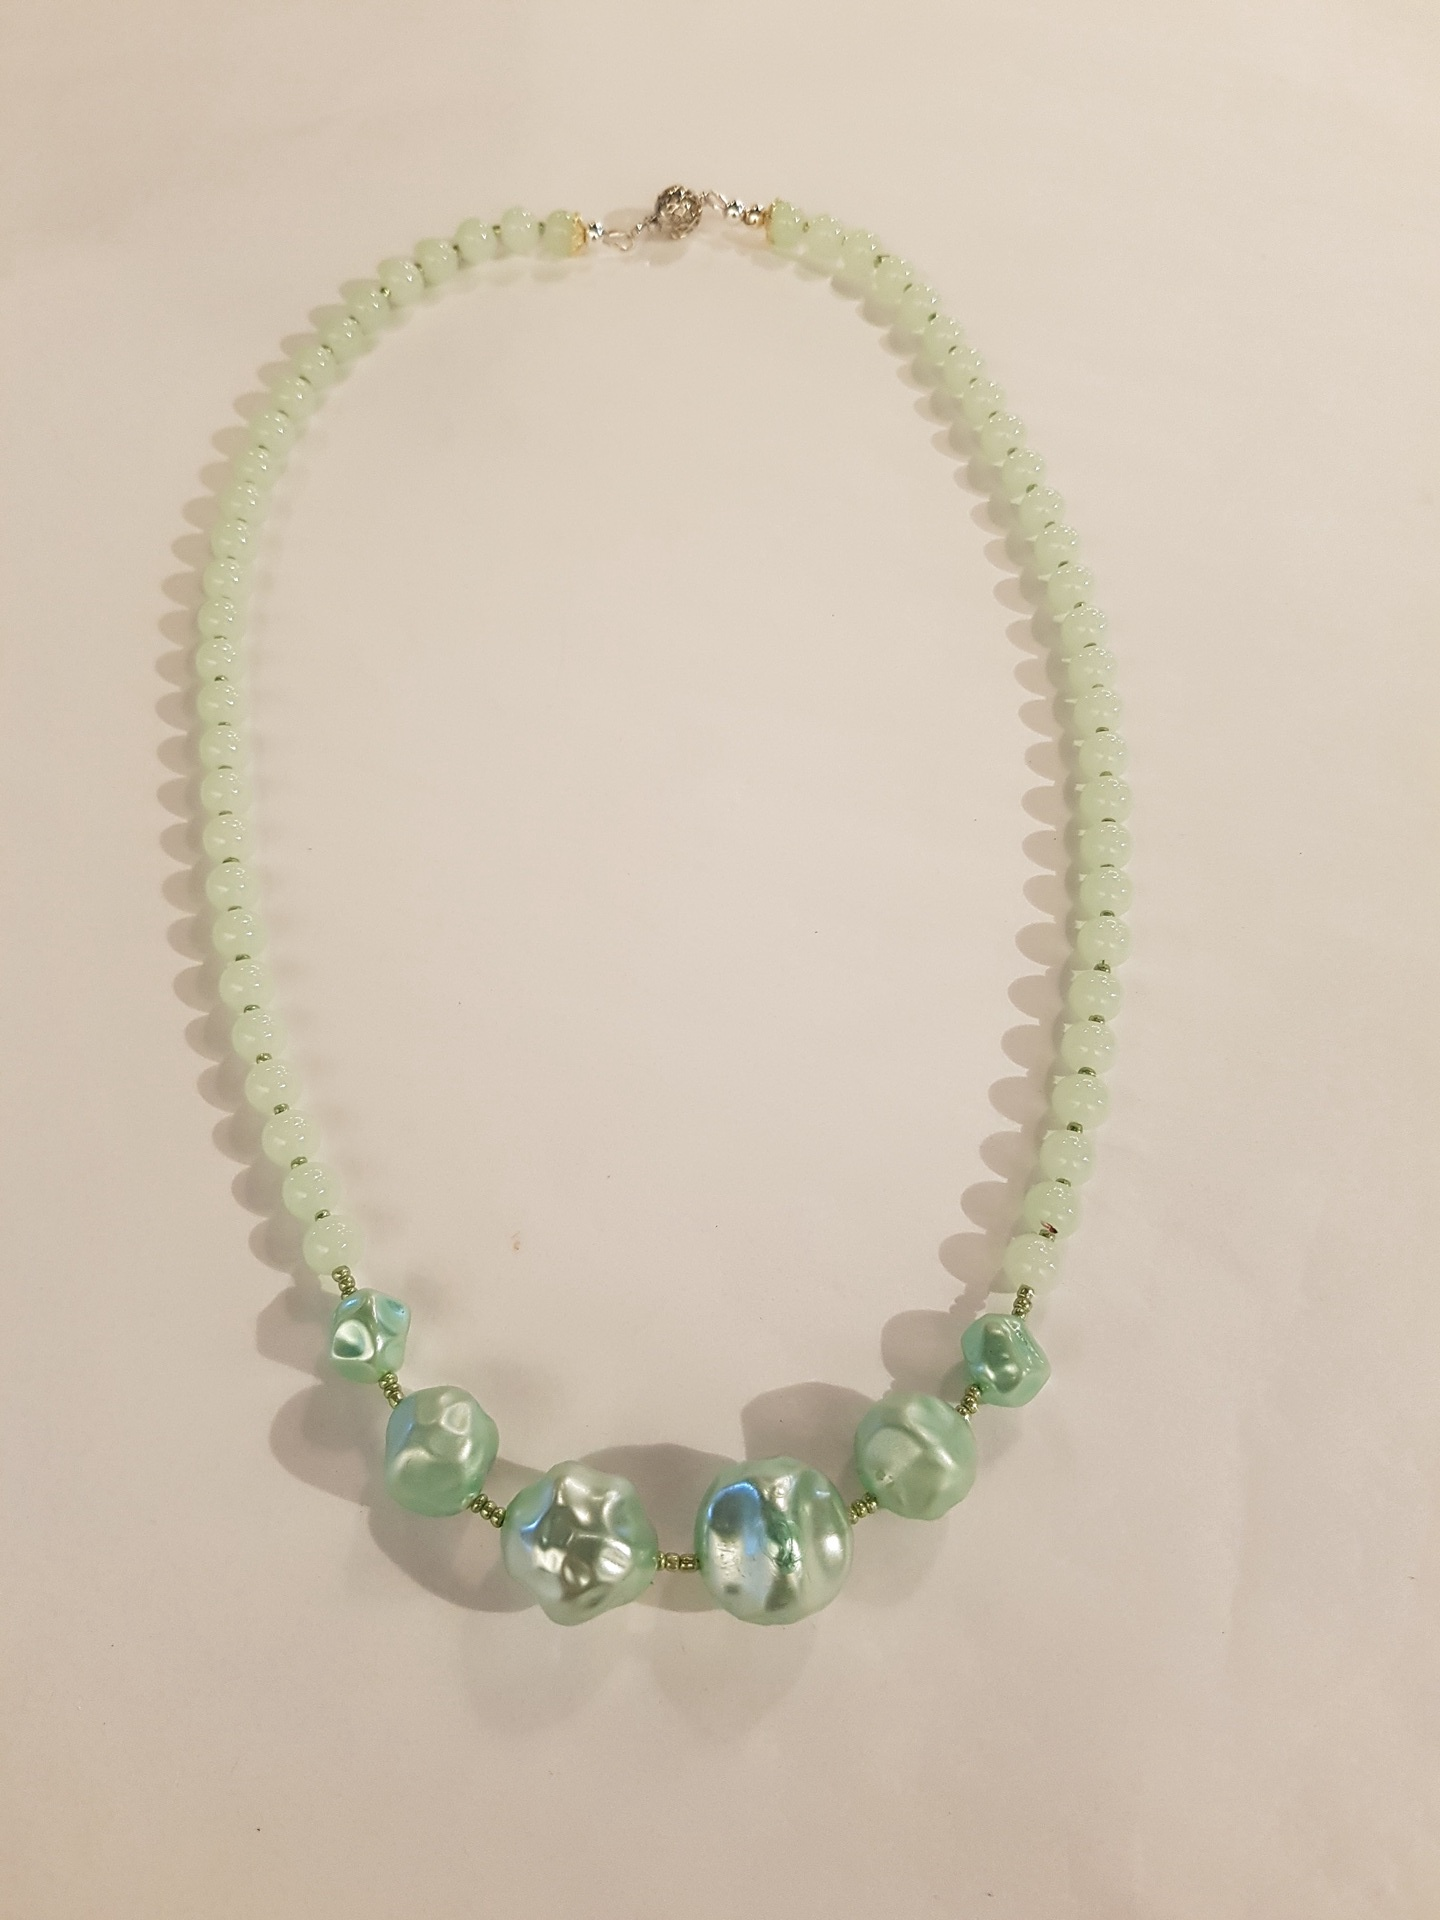 Vintage Ice Green Beaded Necklace